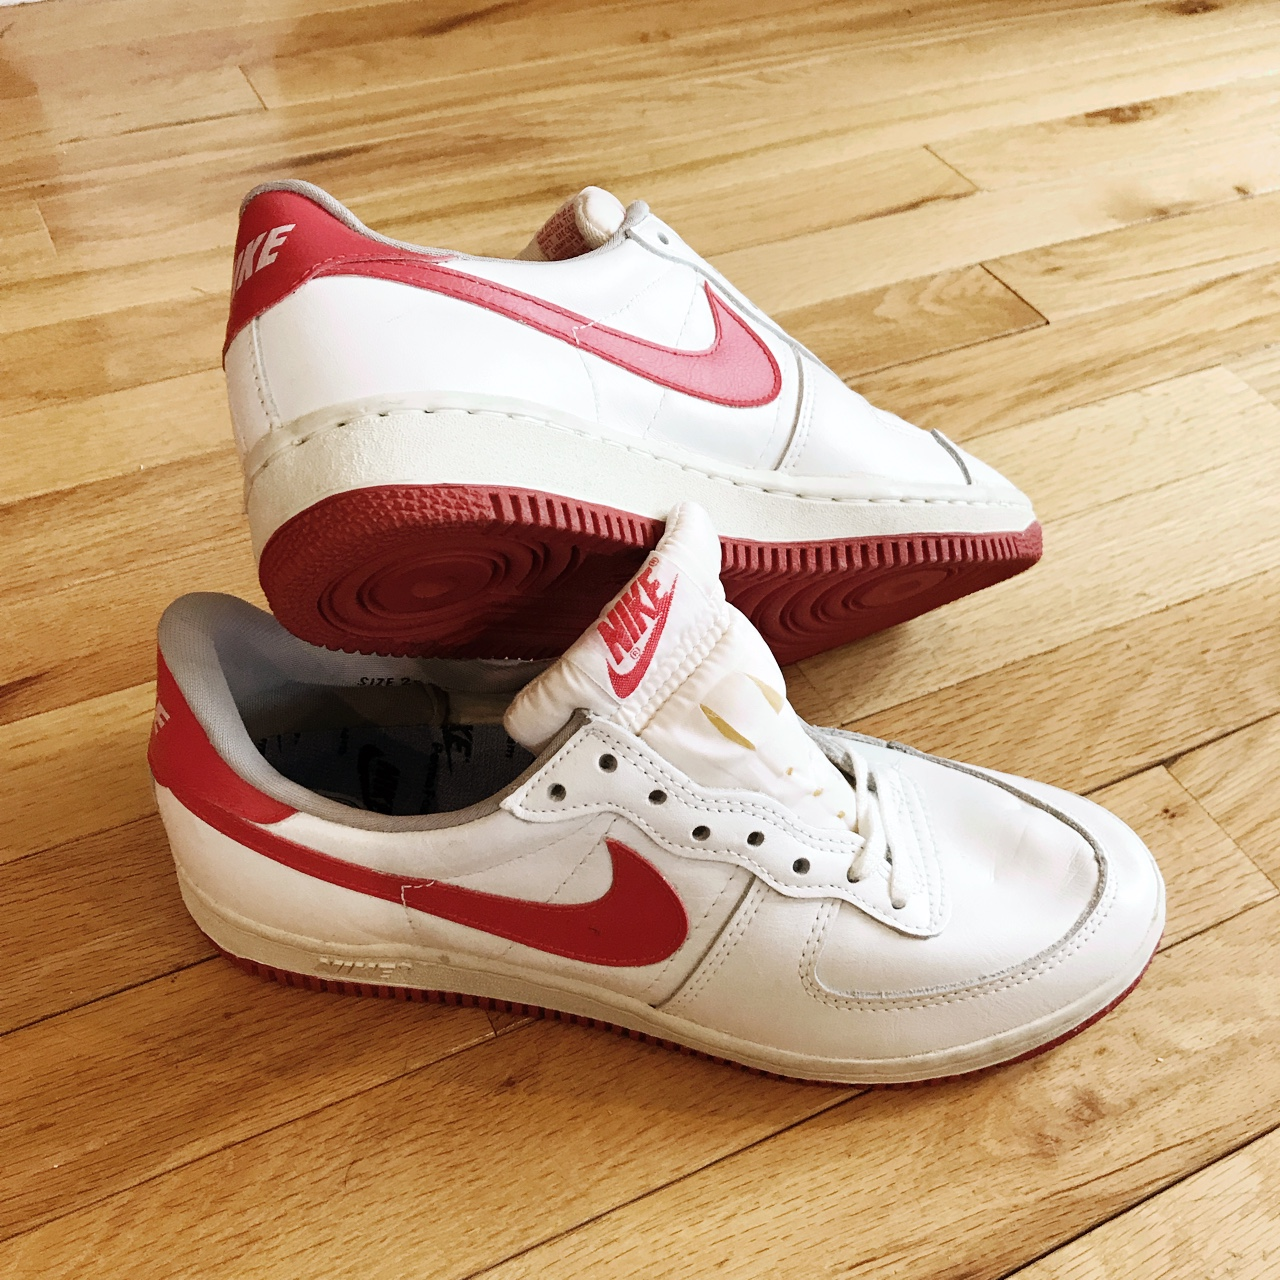 1835718e deathafterdeath. Boston, United States. Vintage Nike Low Top 80's 1984 NOS  Sample Basketball Shoes ...